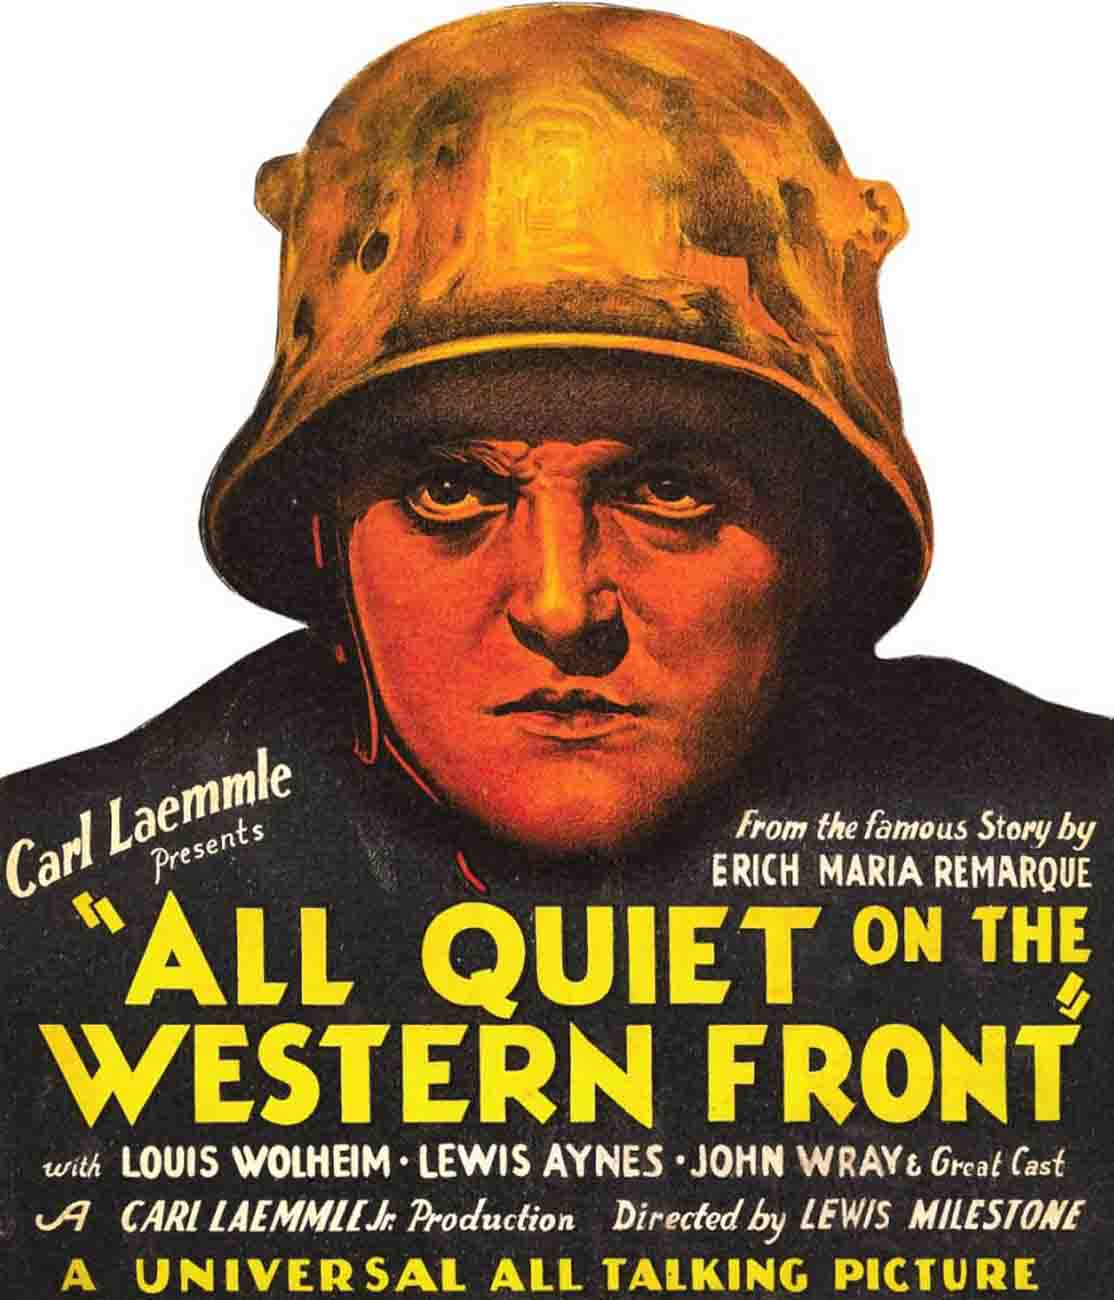 an analysis of alls quiet on the western front an anti war film by lewis milestone In transit - sending long time coming / sandra brown brokeback mountain / annie proulx 3mjav cd 955 kidz bop 8 [sound recording] / kidz bop kids.